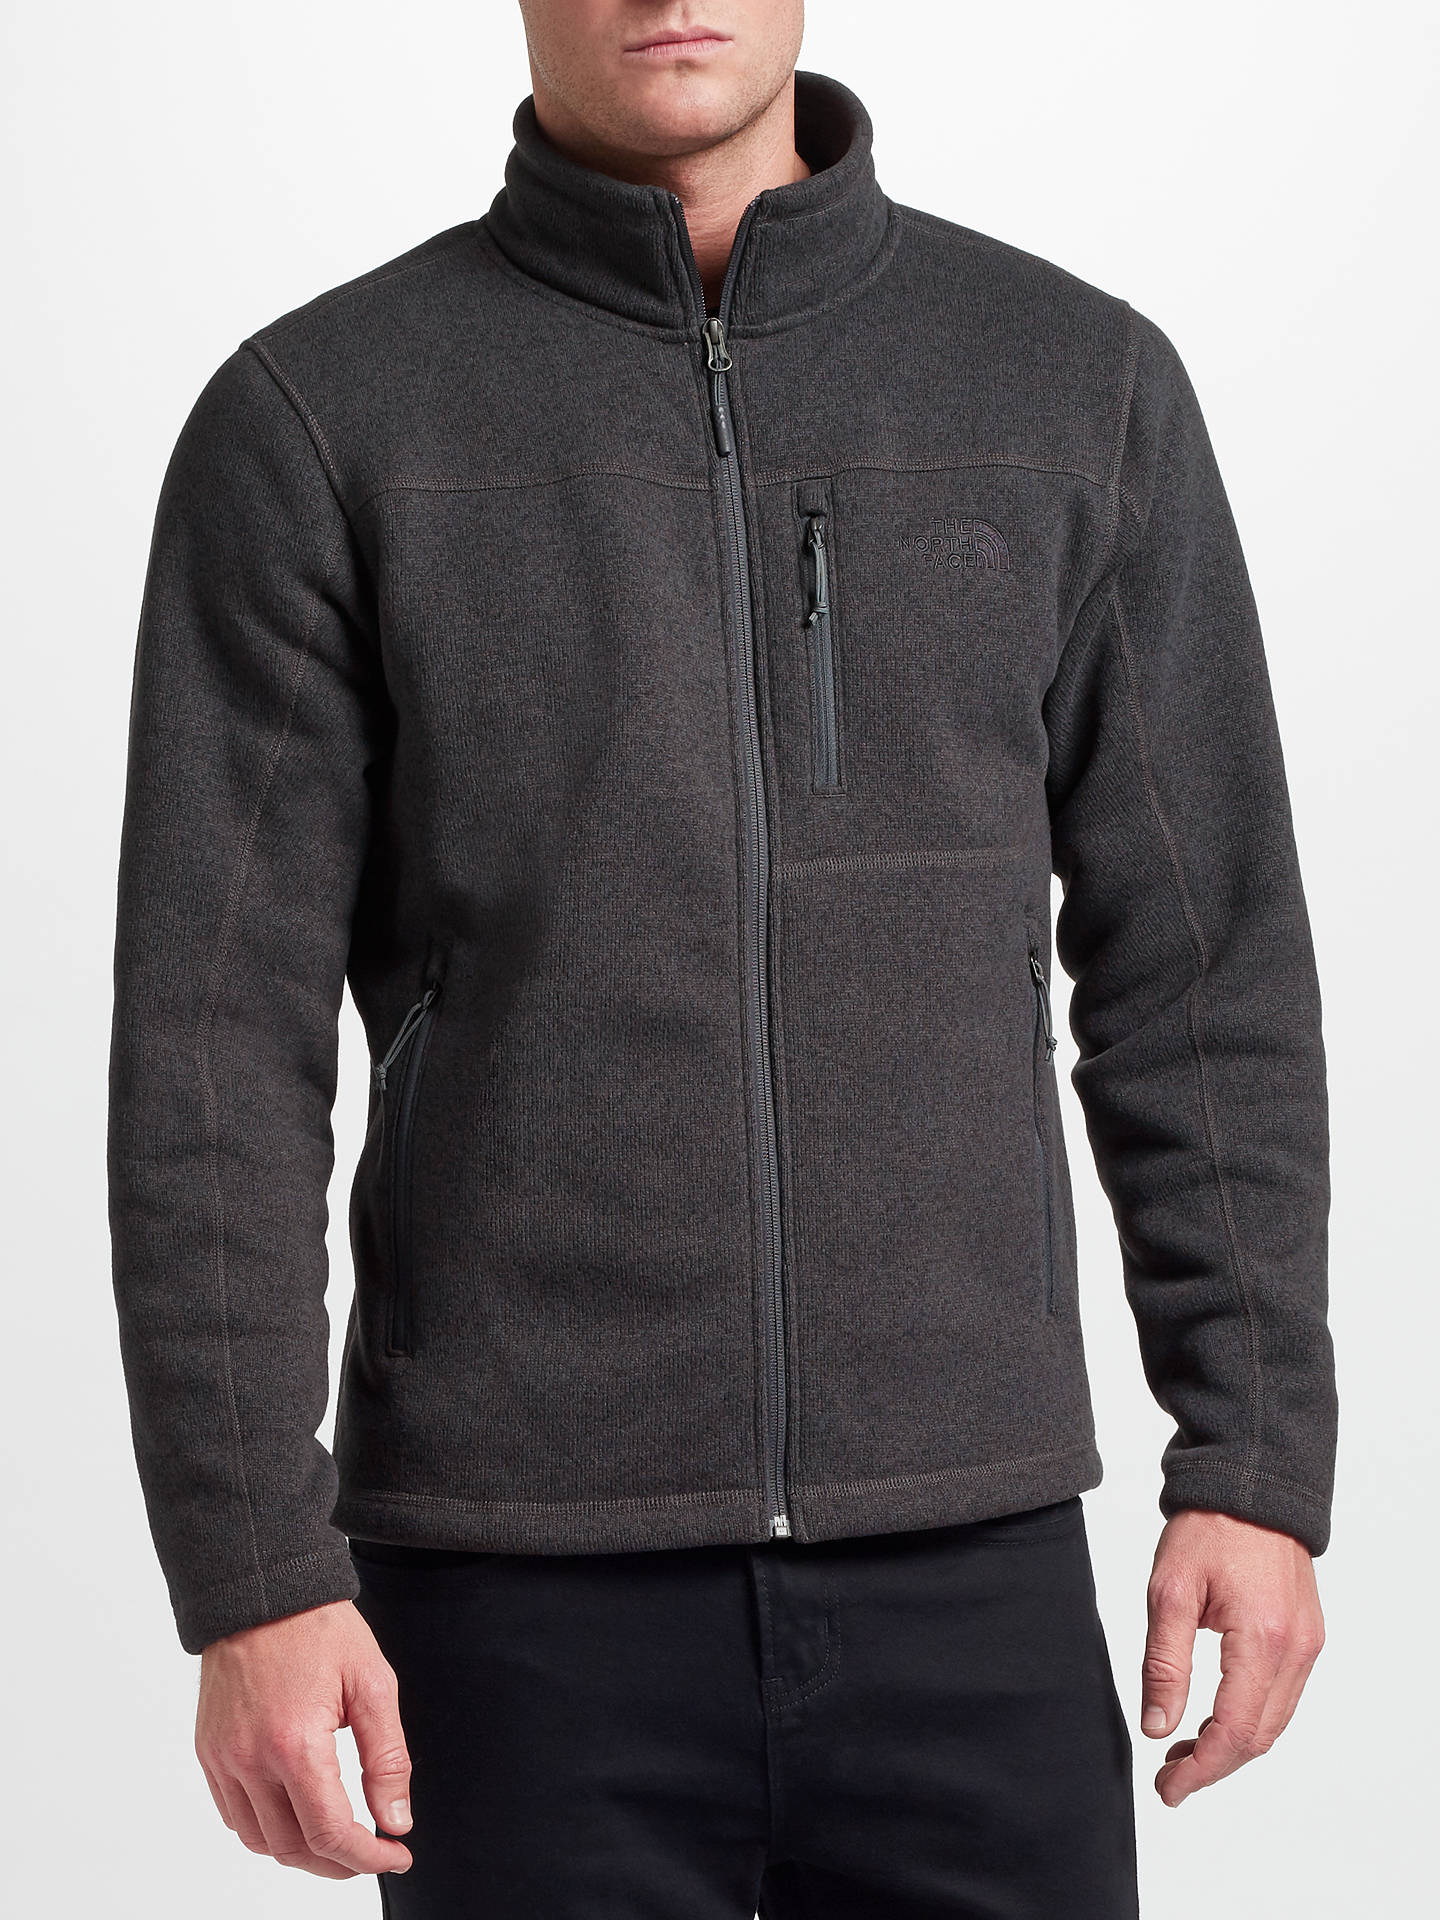 6f0290e8f8a3 Buy The North Face Gordon Lyons Full Zip Men s Fleece Jacket